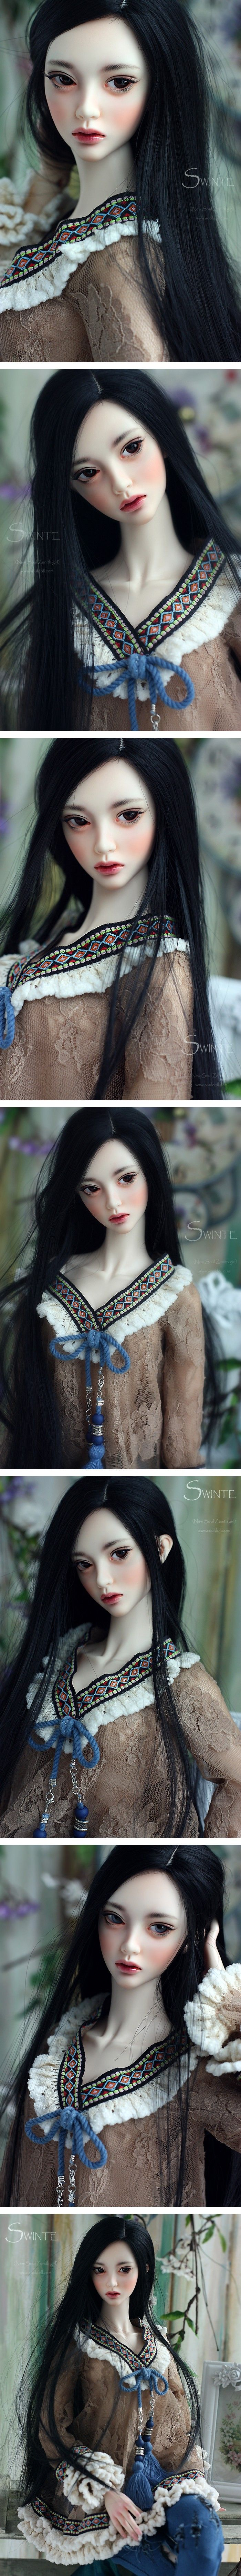 Swinte - 64cm, Soul Doll - BJD Dolls, Accessories - Alice's Collections